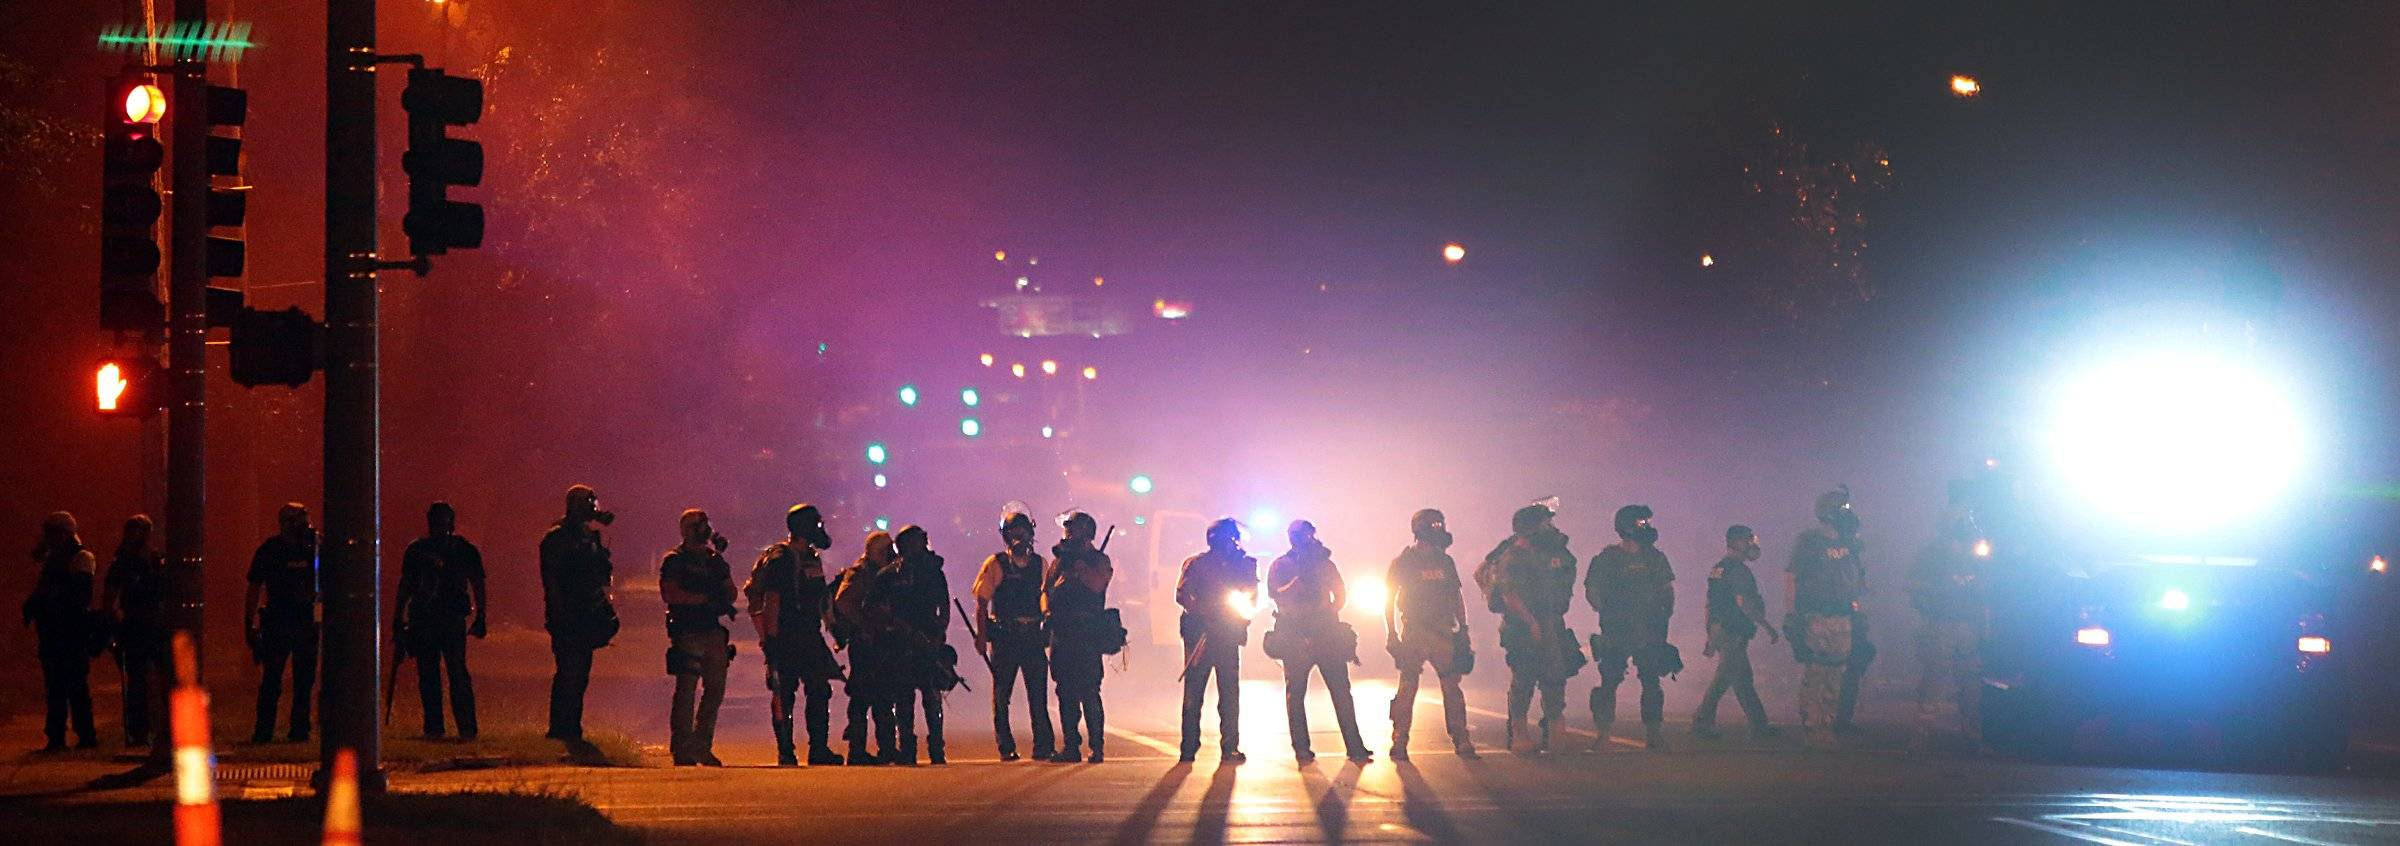 Police officers work their way north on West Florissant Avenue in Ferguson, Mo., clearing the road of people Wednesday, Aug. 13, 2014. Protests in the St. Louis suburb rocked by racial unrest since a white police officer shot an unarmed black teenager to death turned violent Wednesday night.